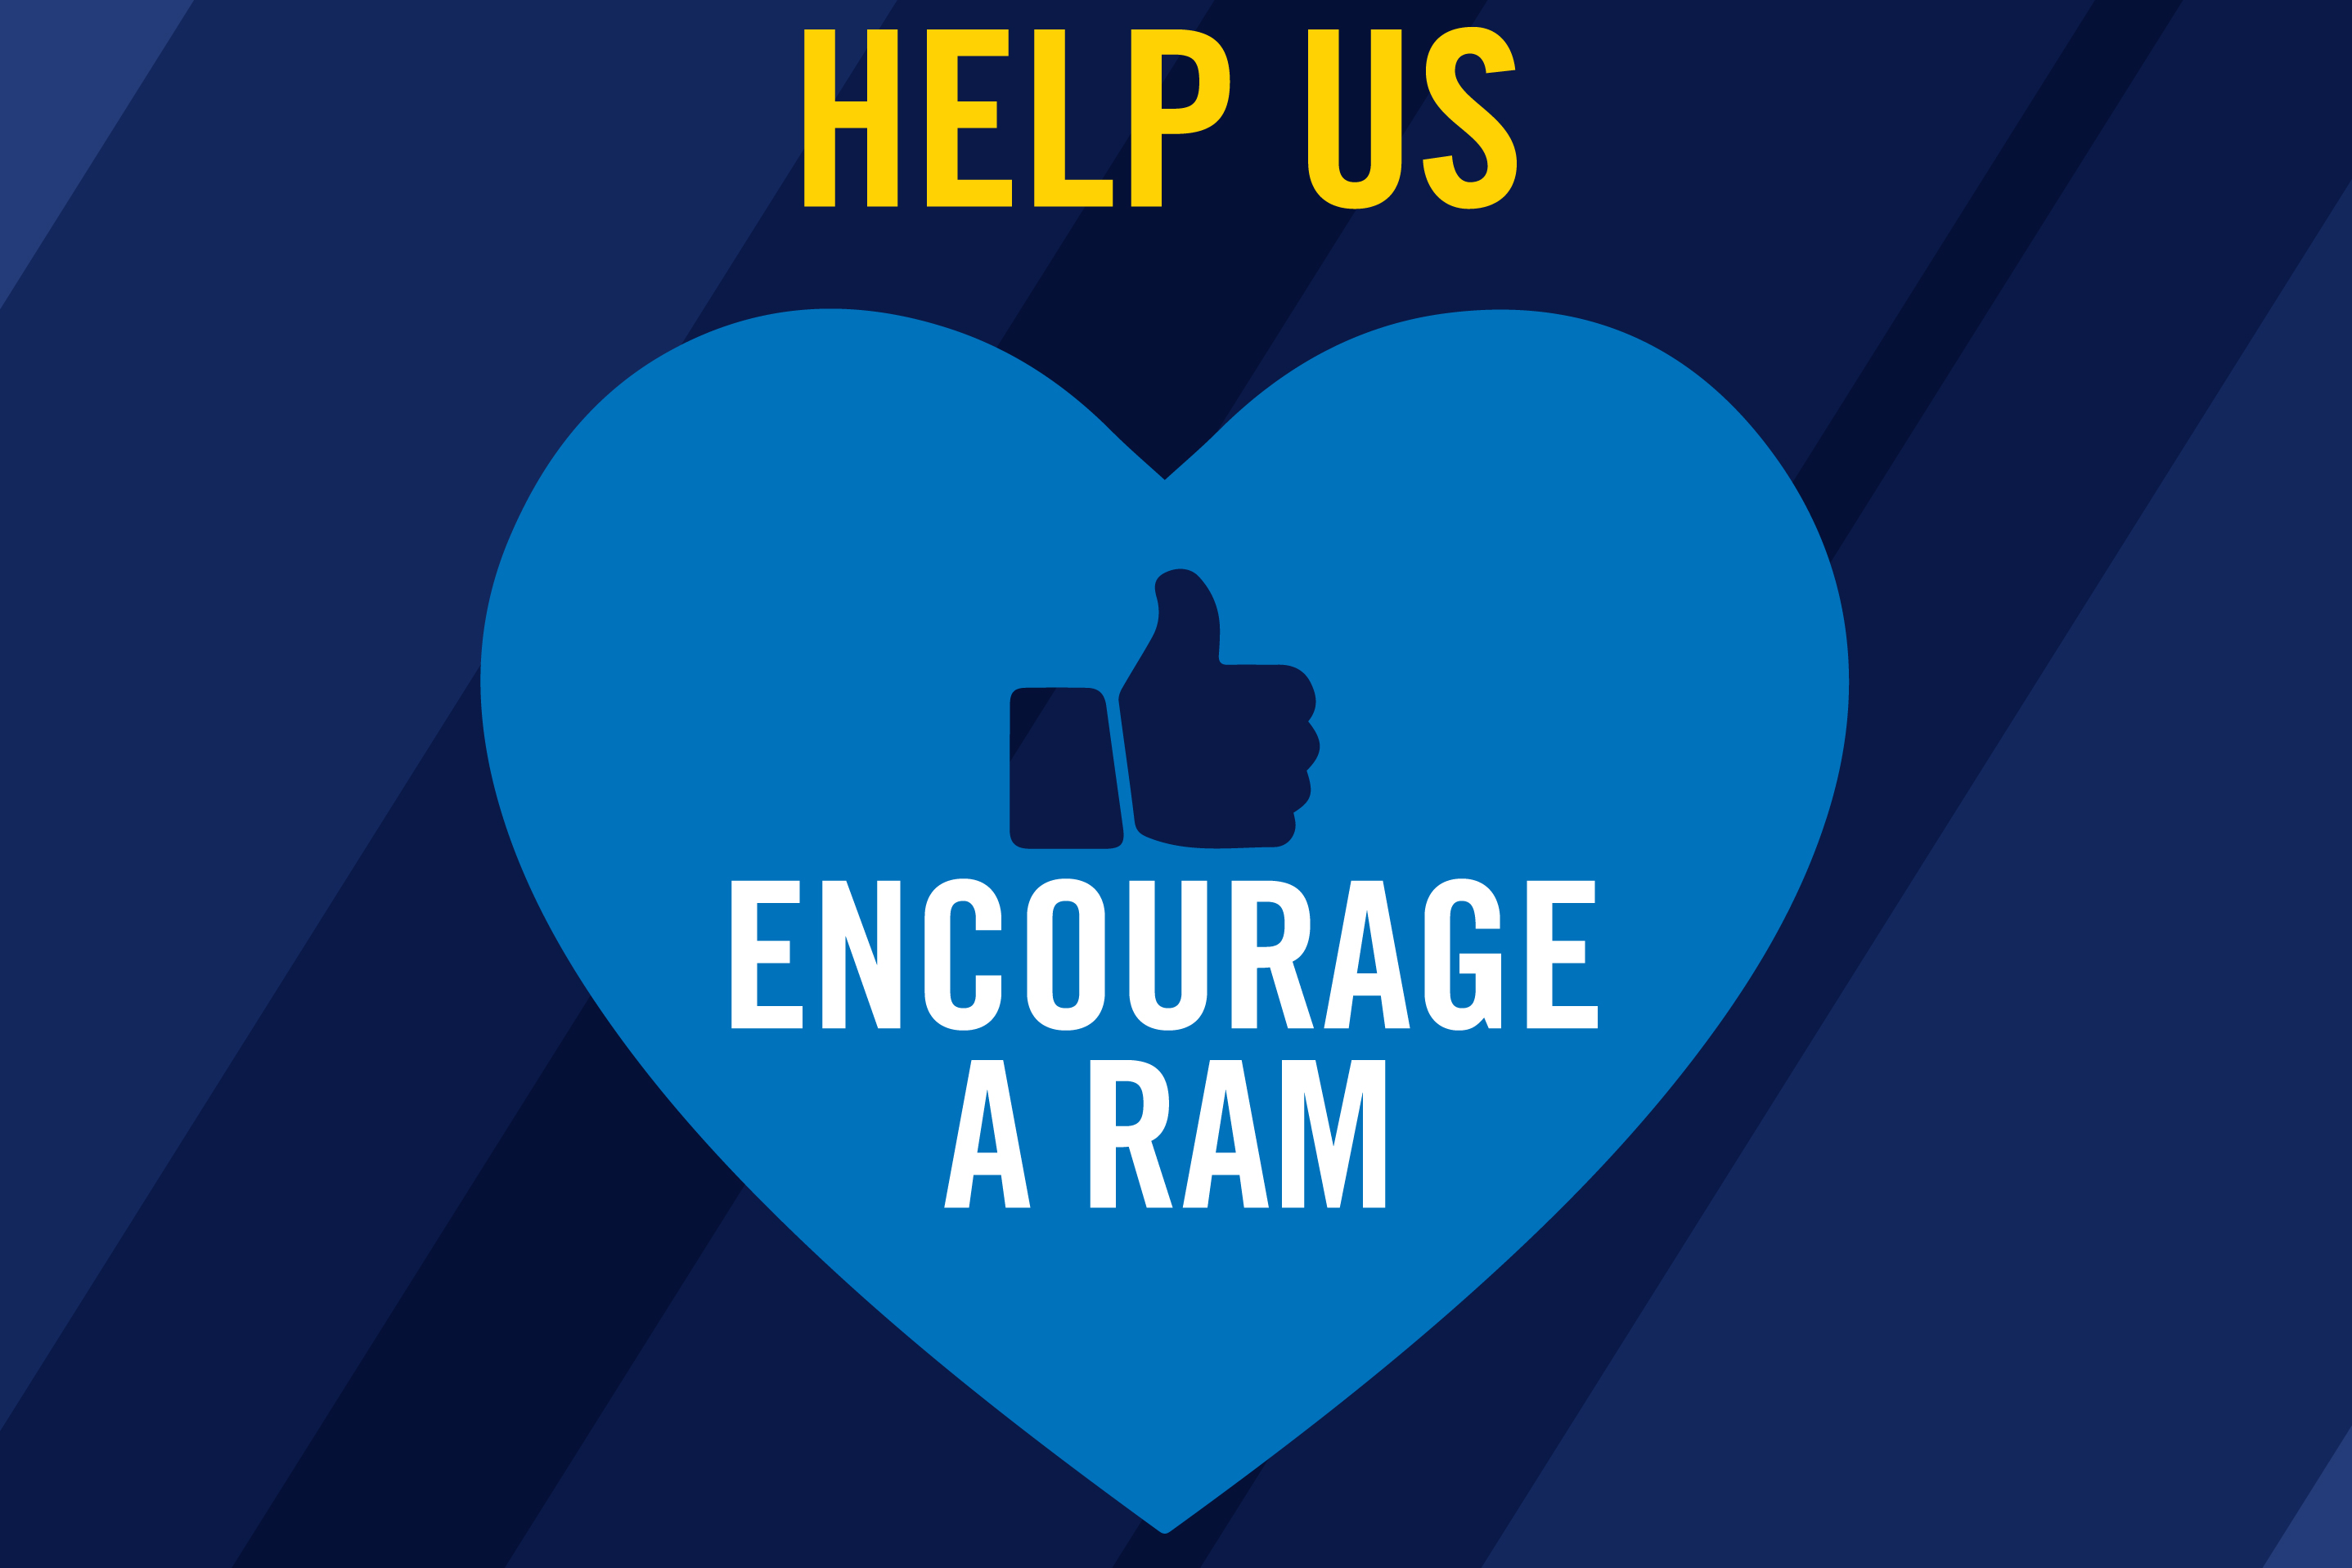 Help Us Encourage a Ram